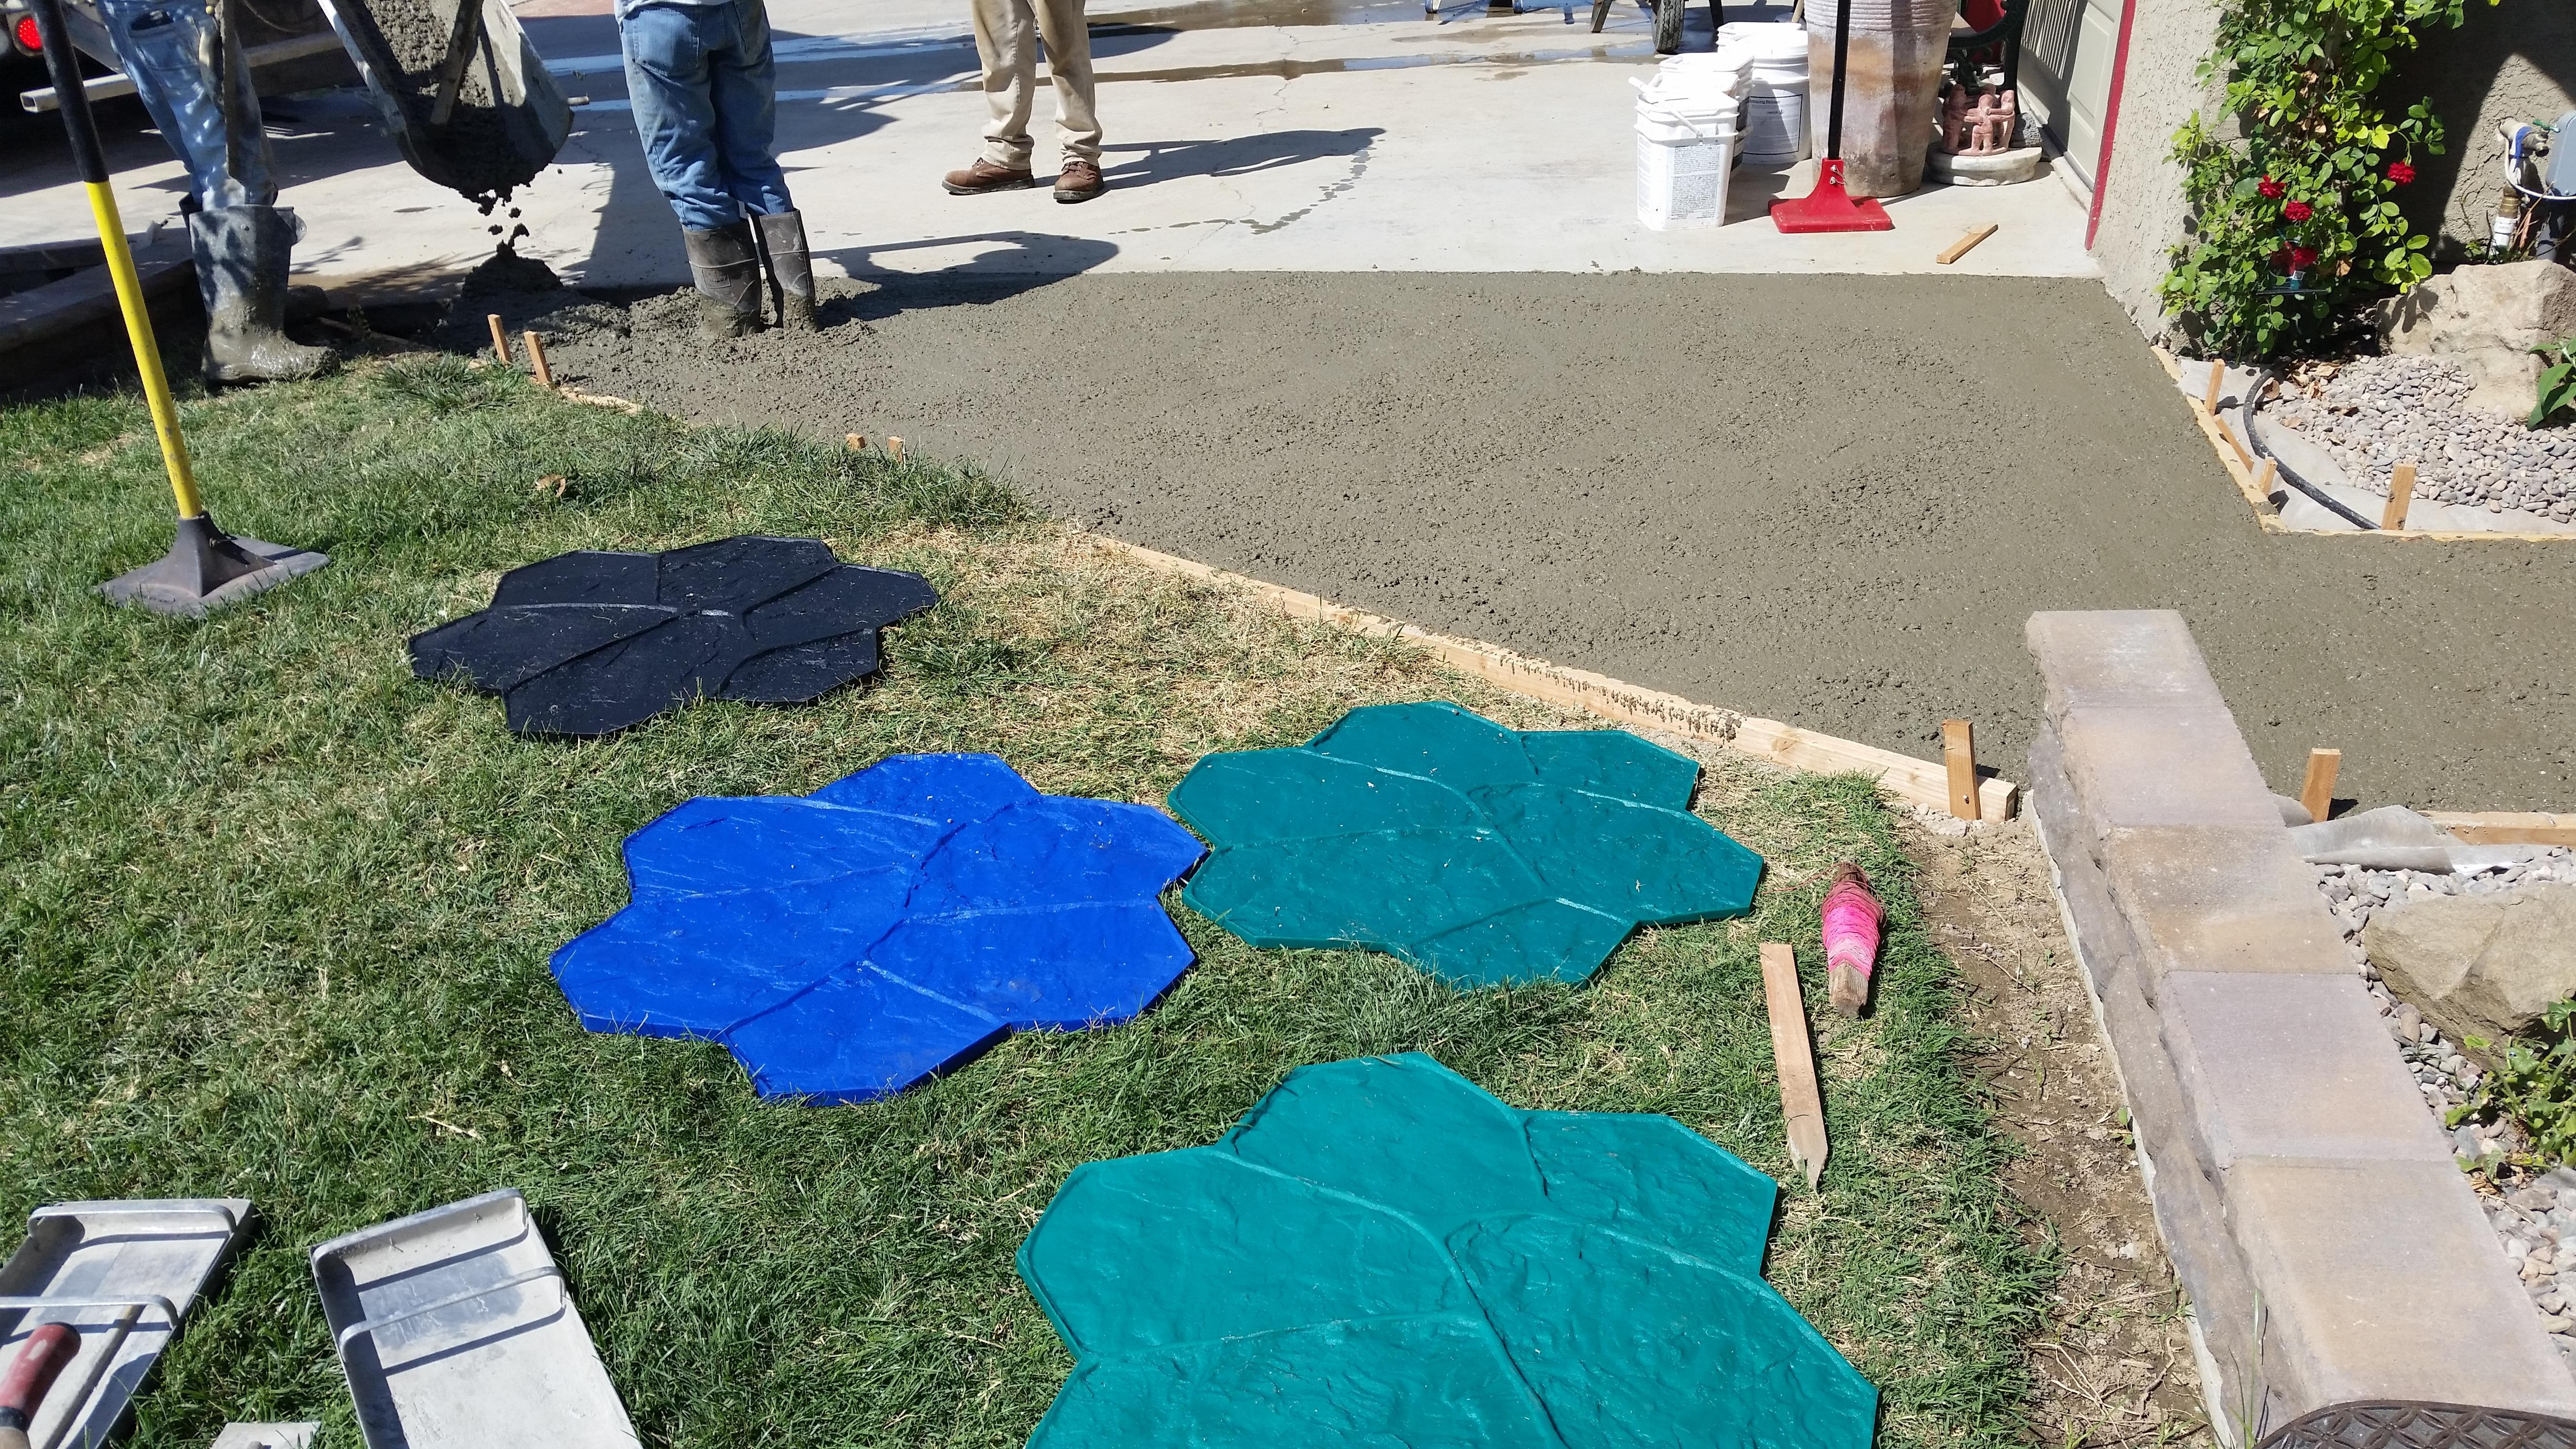 Creative visions landscaping inc in merced ca 95340 for Landscaping rocks merced ca